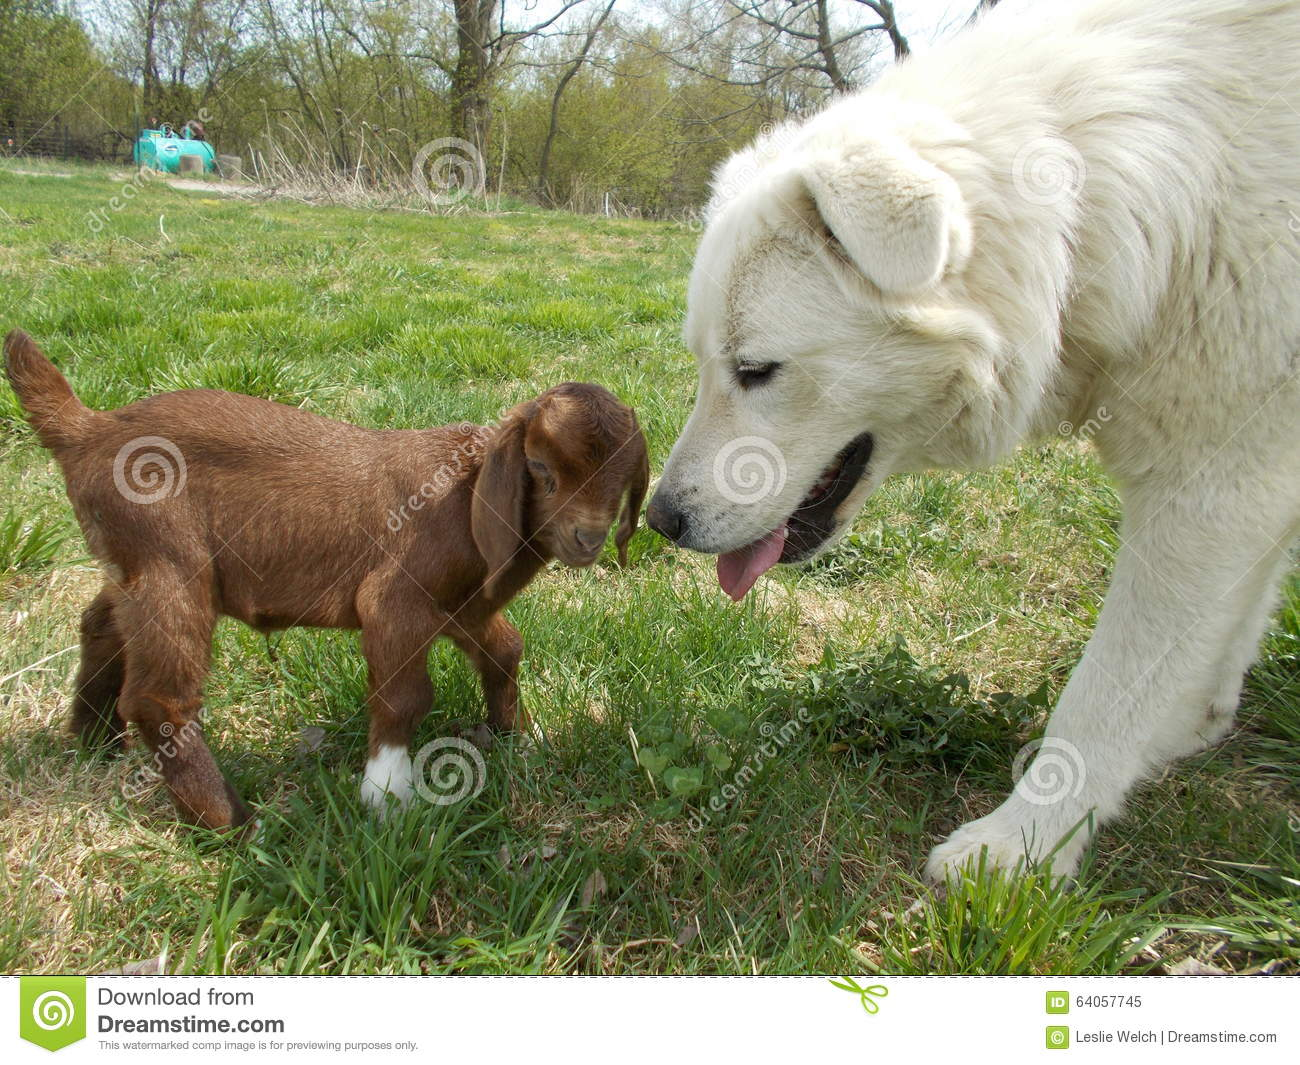 White Maremma Sheep guardian dog with brown baby kid goat on grass.